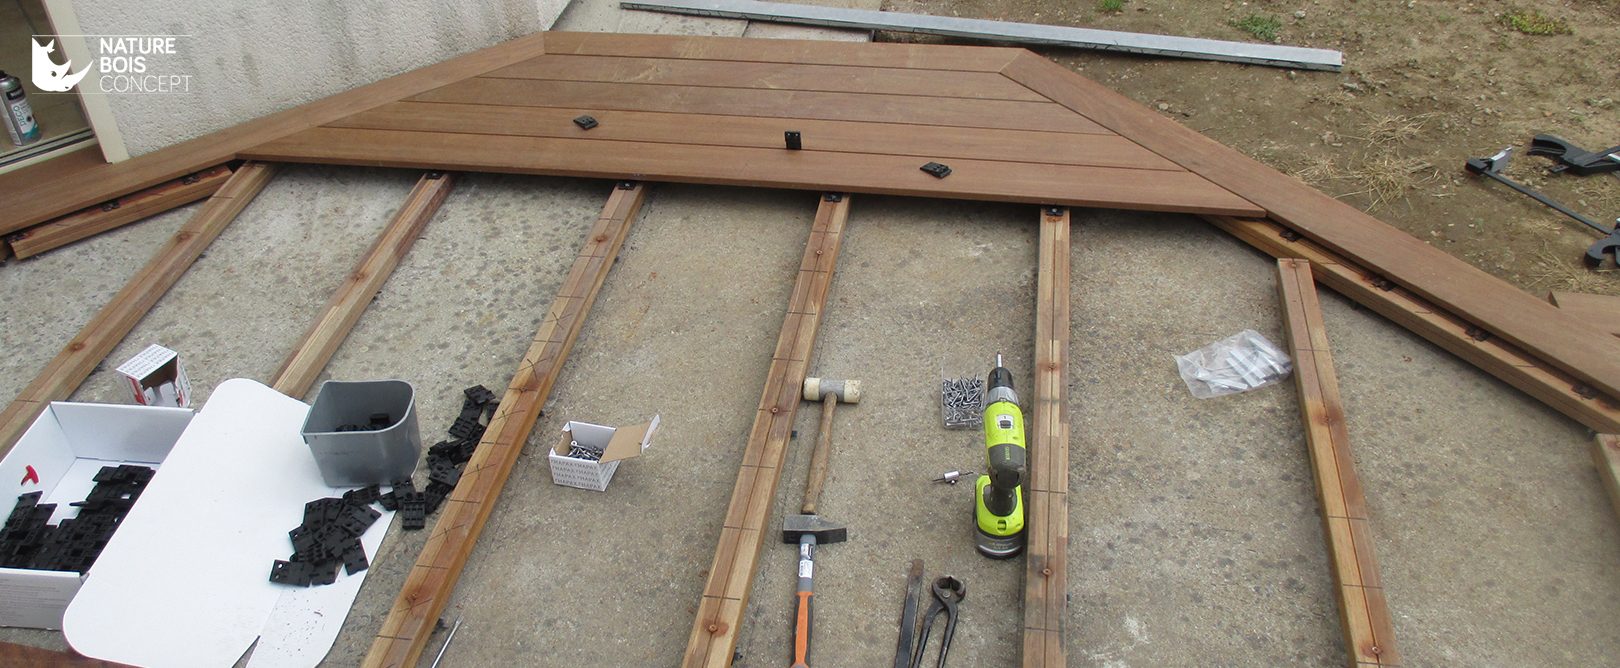 montage-lame-terrasse-hapax-fixing-pro